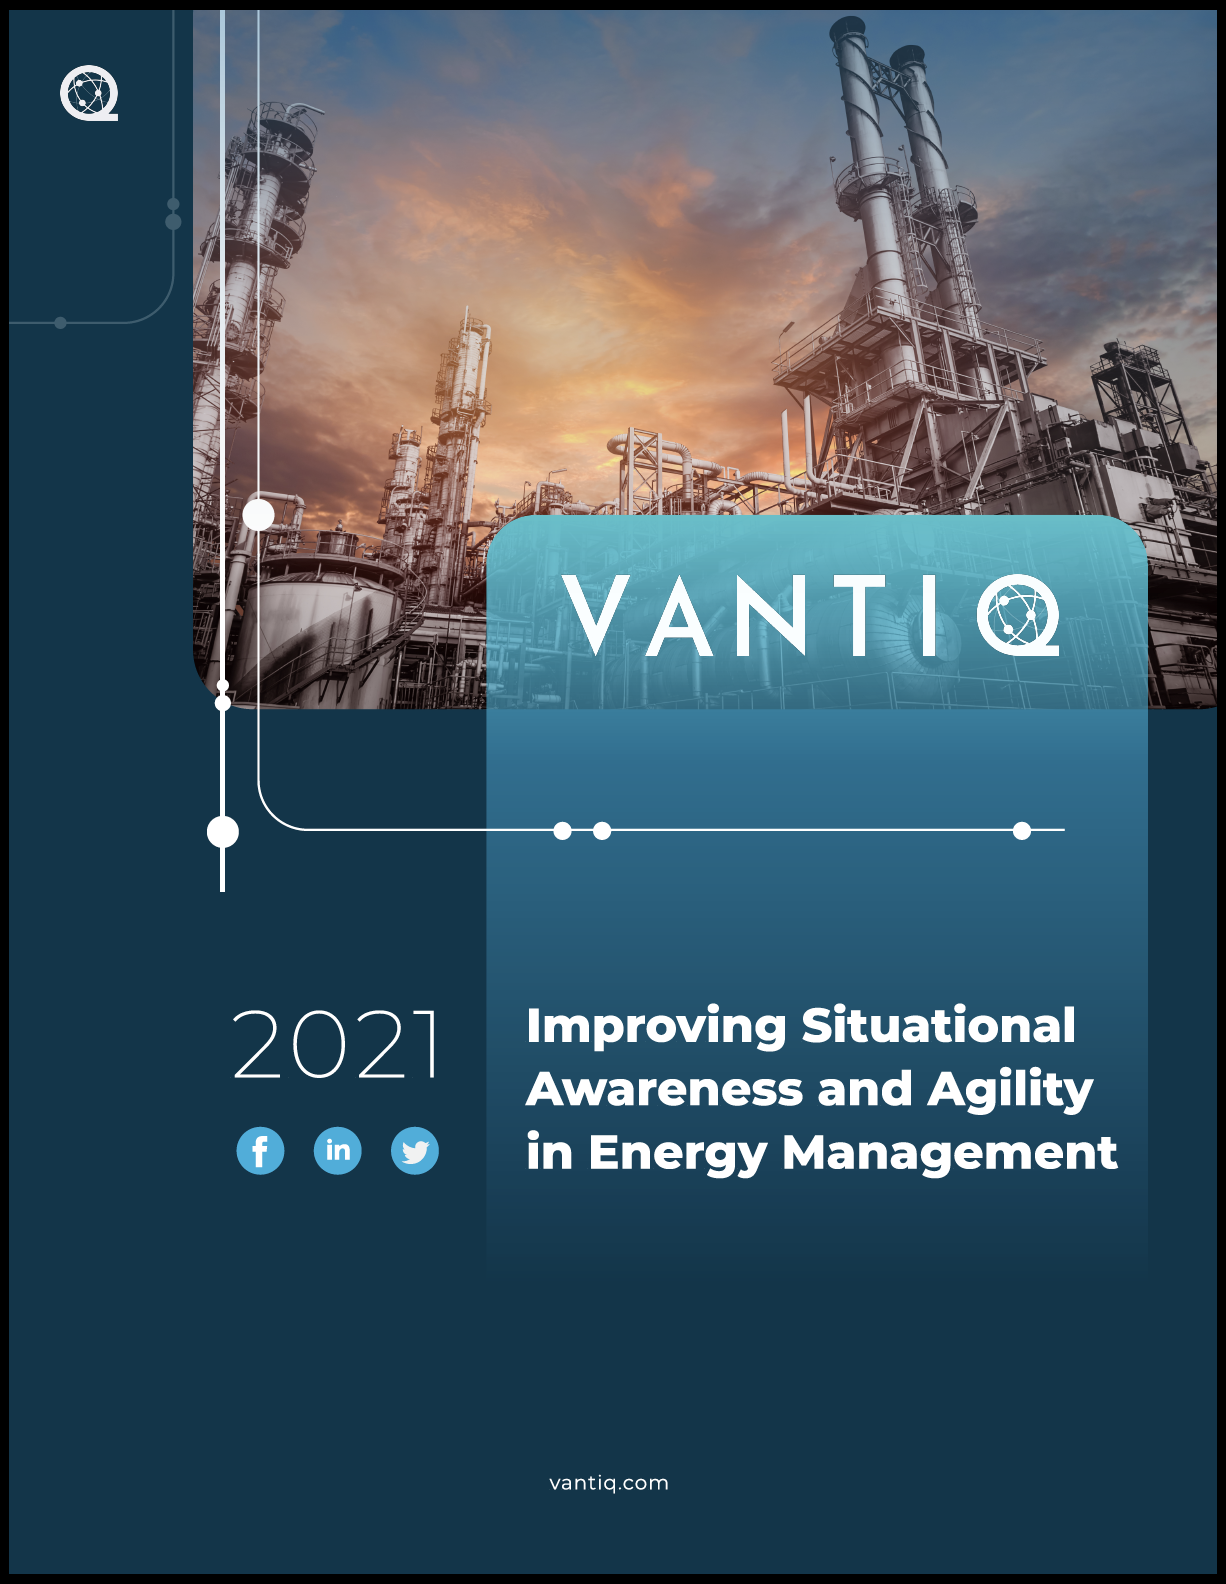 Improving Situational Awareness and Agility in Energy Management ebook cover page